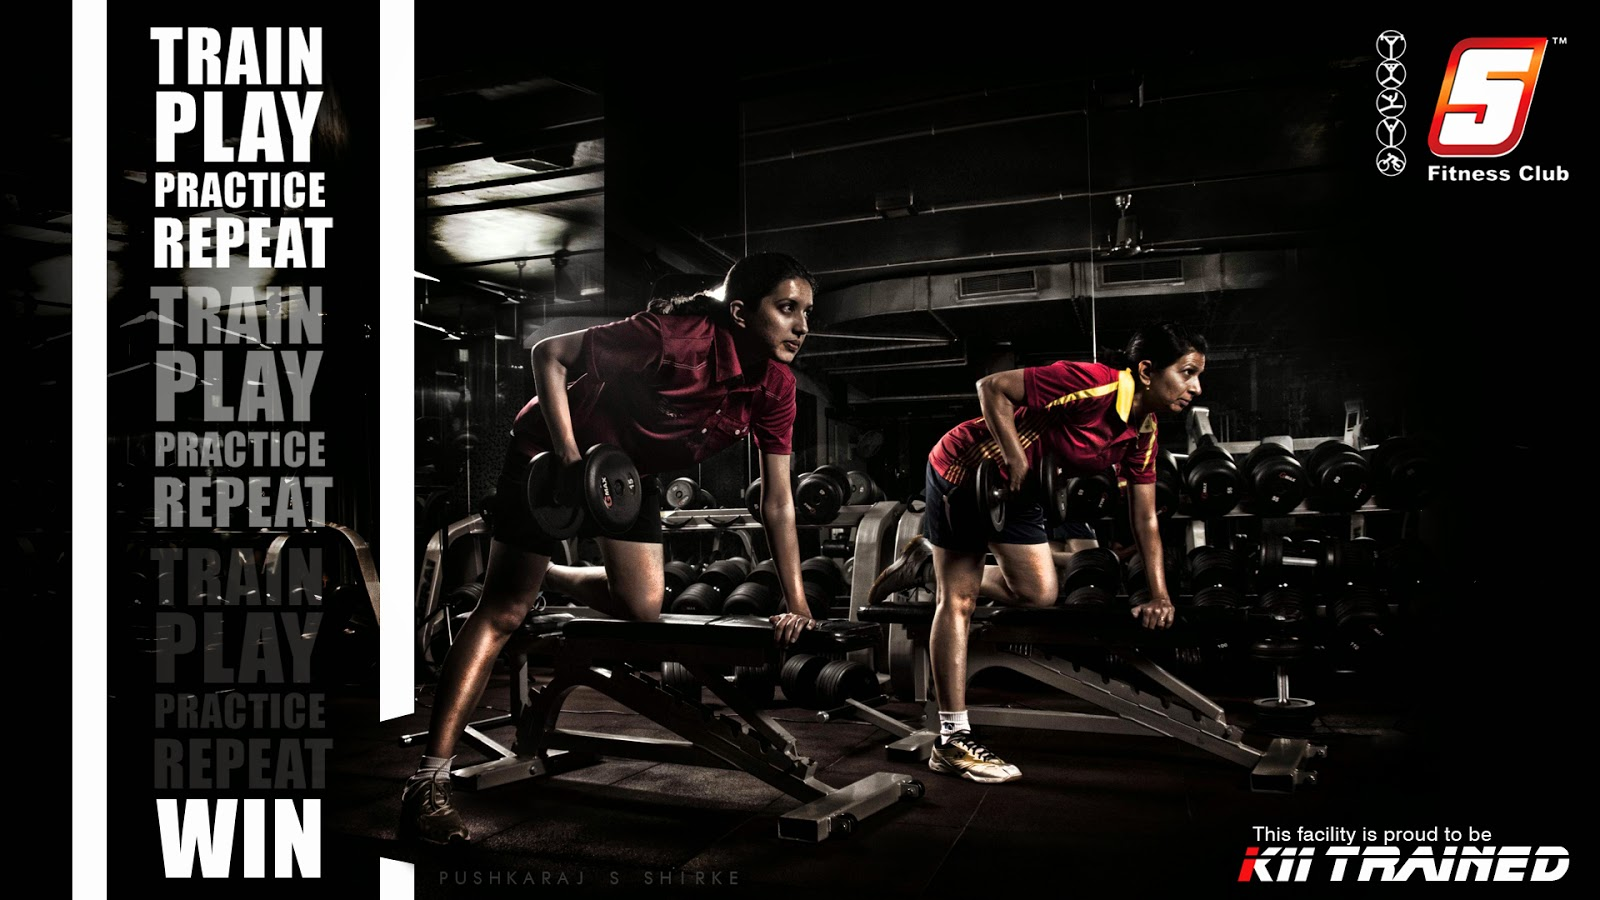 5+fitness+club+gym+sports+conditioning+badminton+K11+pune+mumbai+pushkaraj+s+shirke+photography+poster_03.jpg